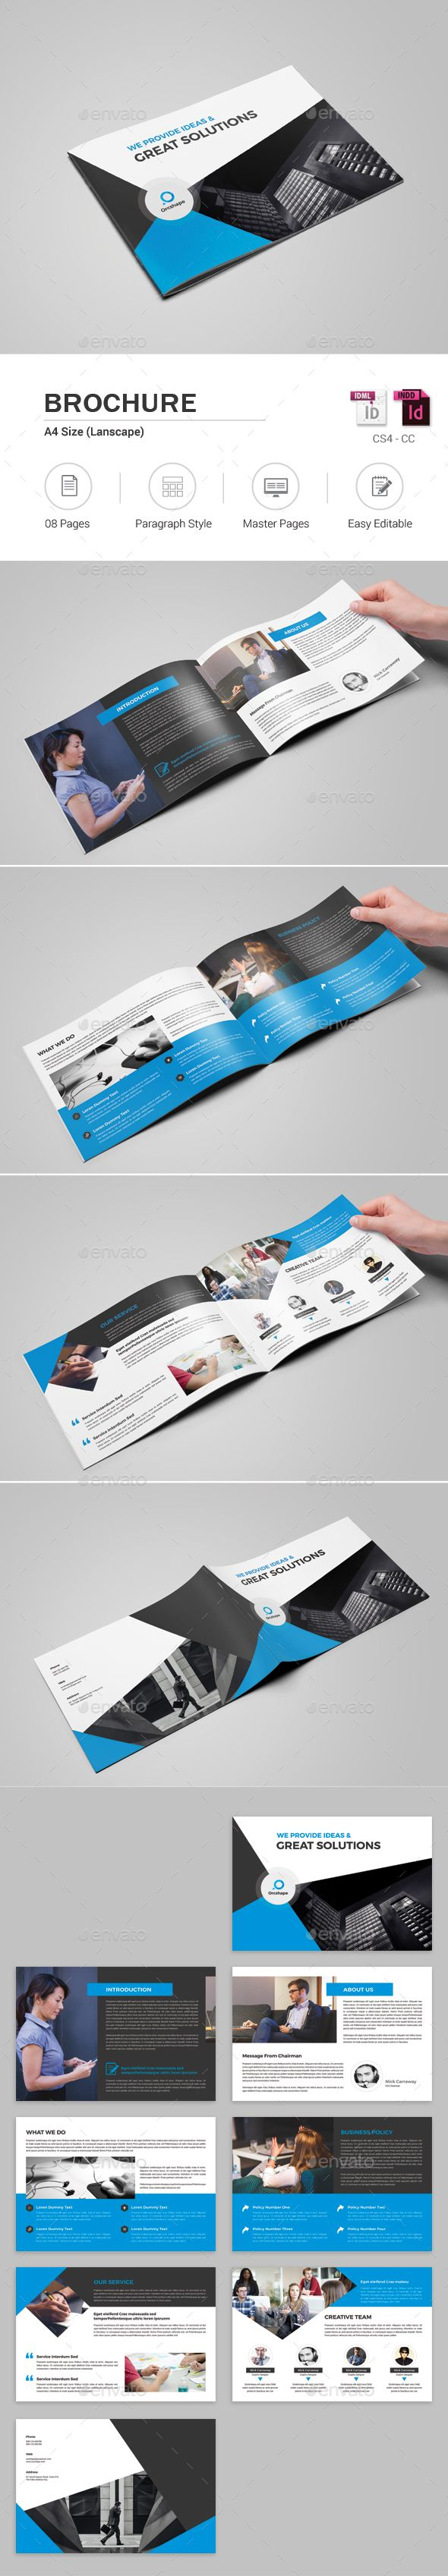 Pages Landscape Brochure  Brochures Brochure Template And